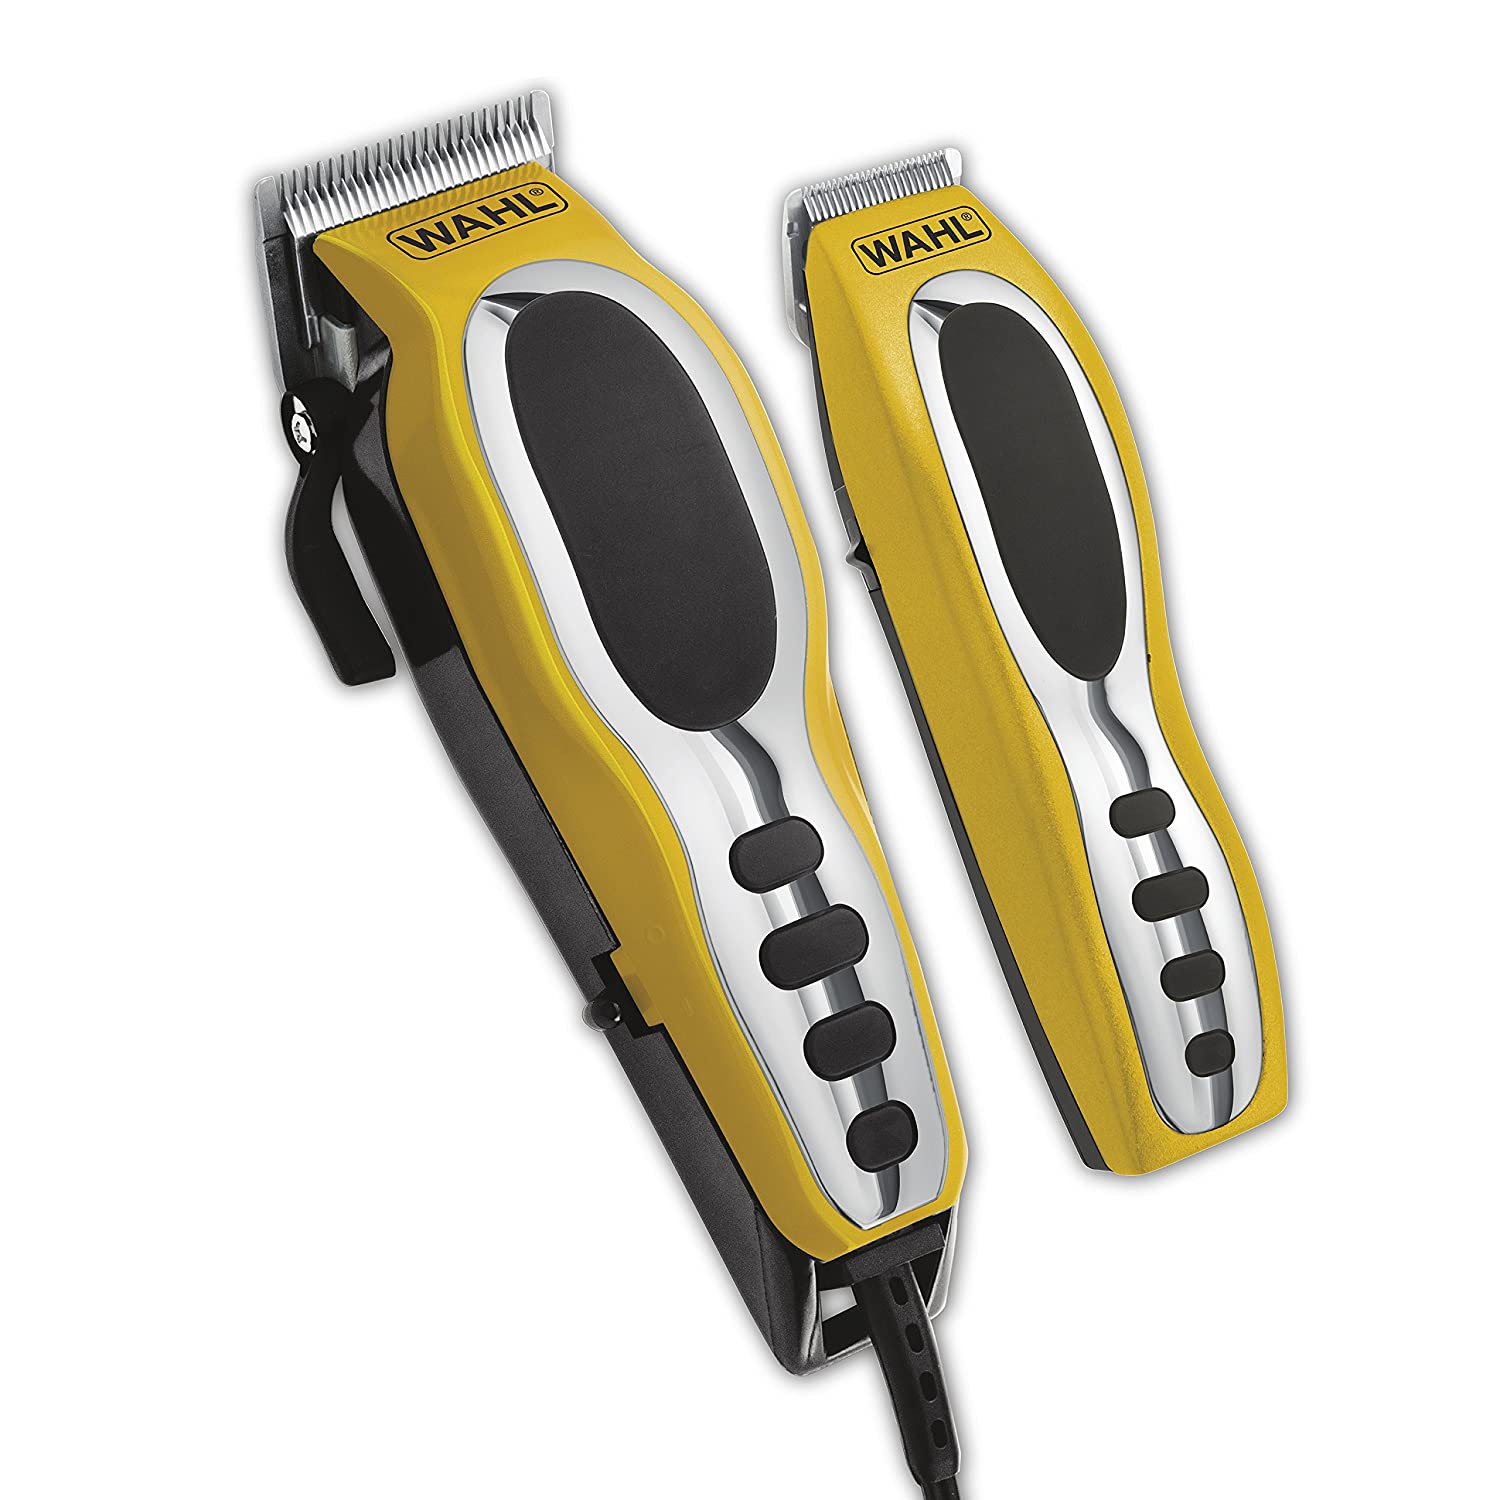 Hair accessories singapore - Wahl 79520 3101p Groom Pro Total Body Grooming Kit High Carbon Steel Blades